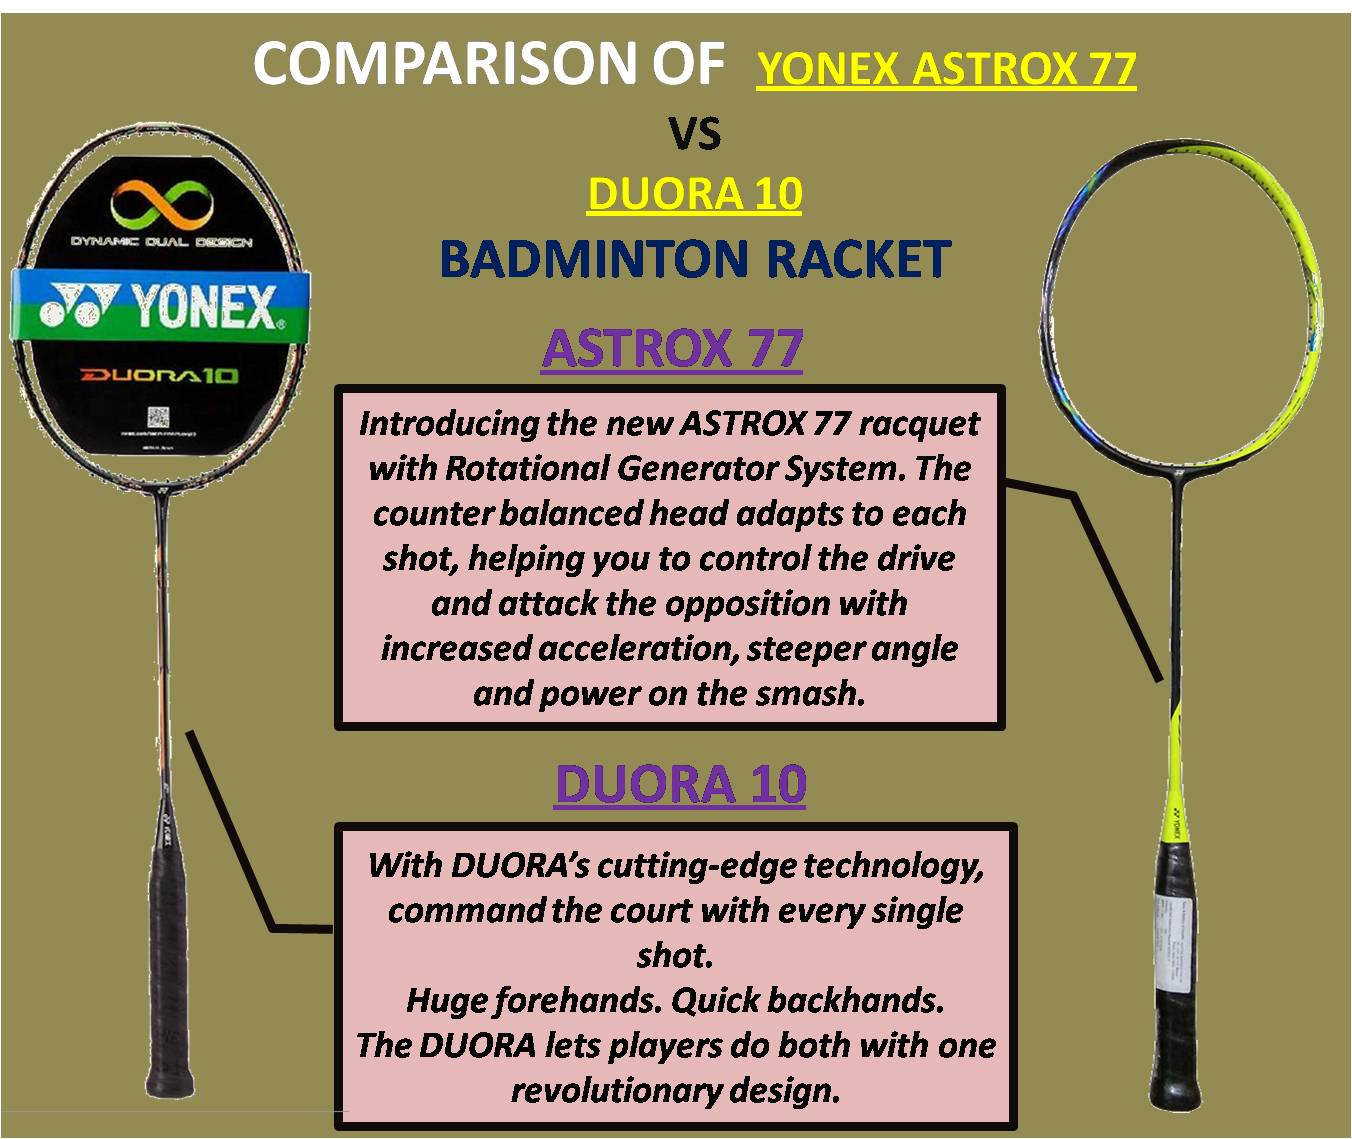 COMPARISON OF YONEX ASTROX 77 VS DUORA 10_1